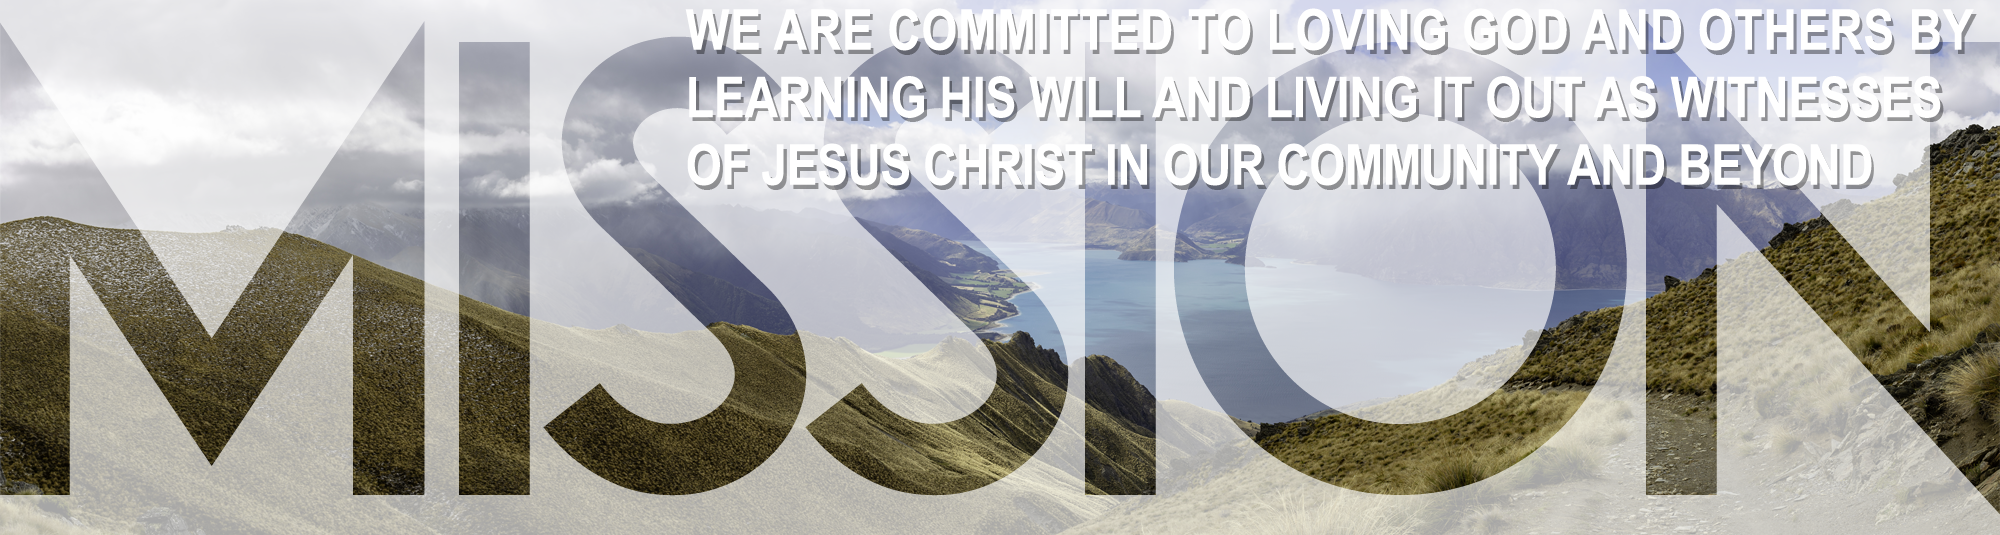 Mission Statement: We are committed to Loving God and others by Learning His will and Living it out as witnesses of Jesus Christ in our community and beyond